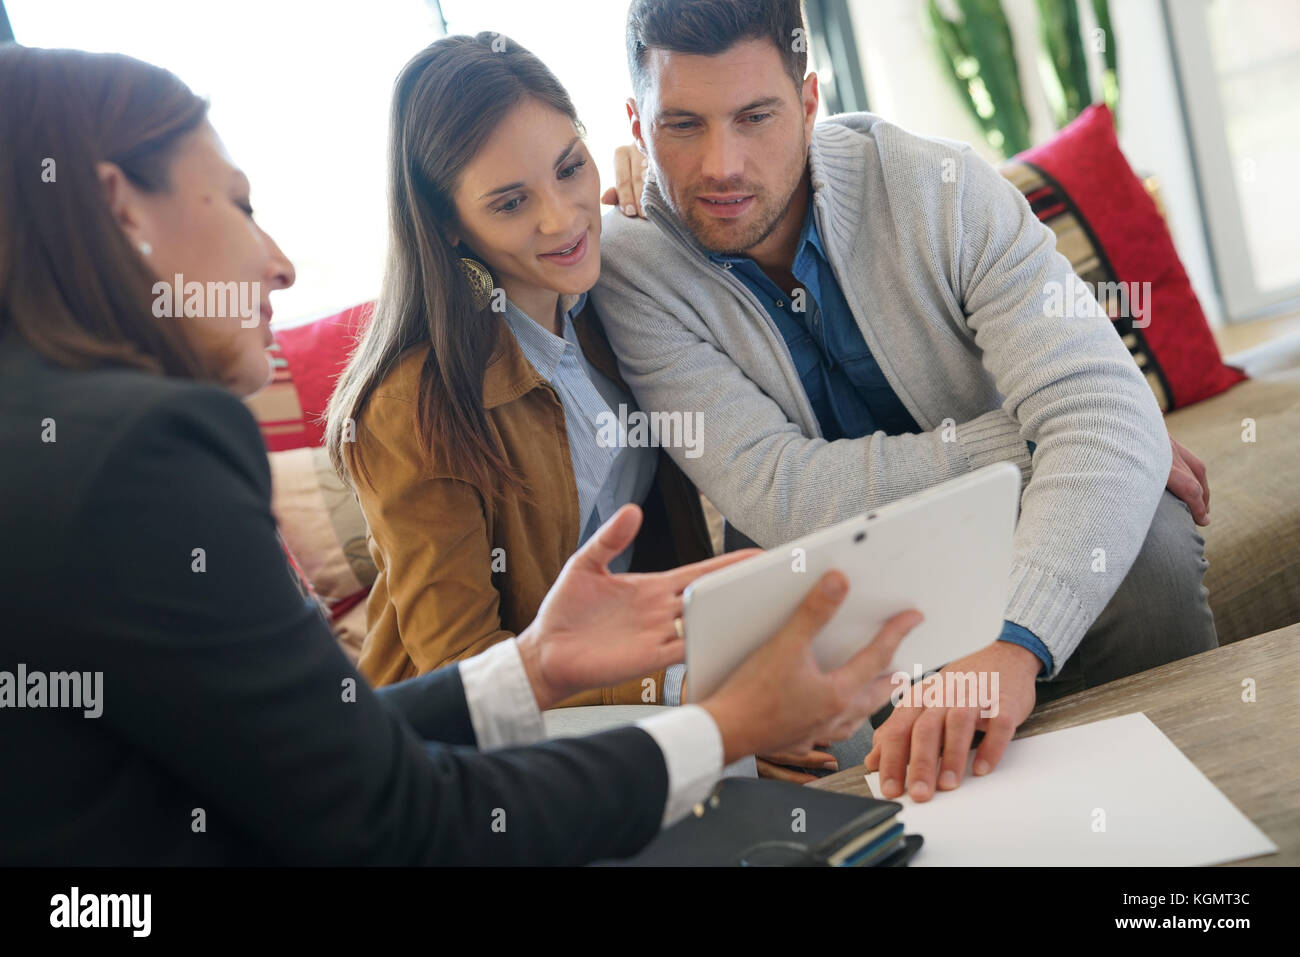 Real estate agent showing house project on tablet to clients - Stock Image